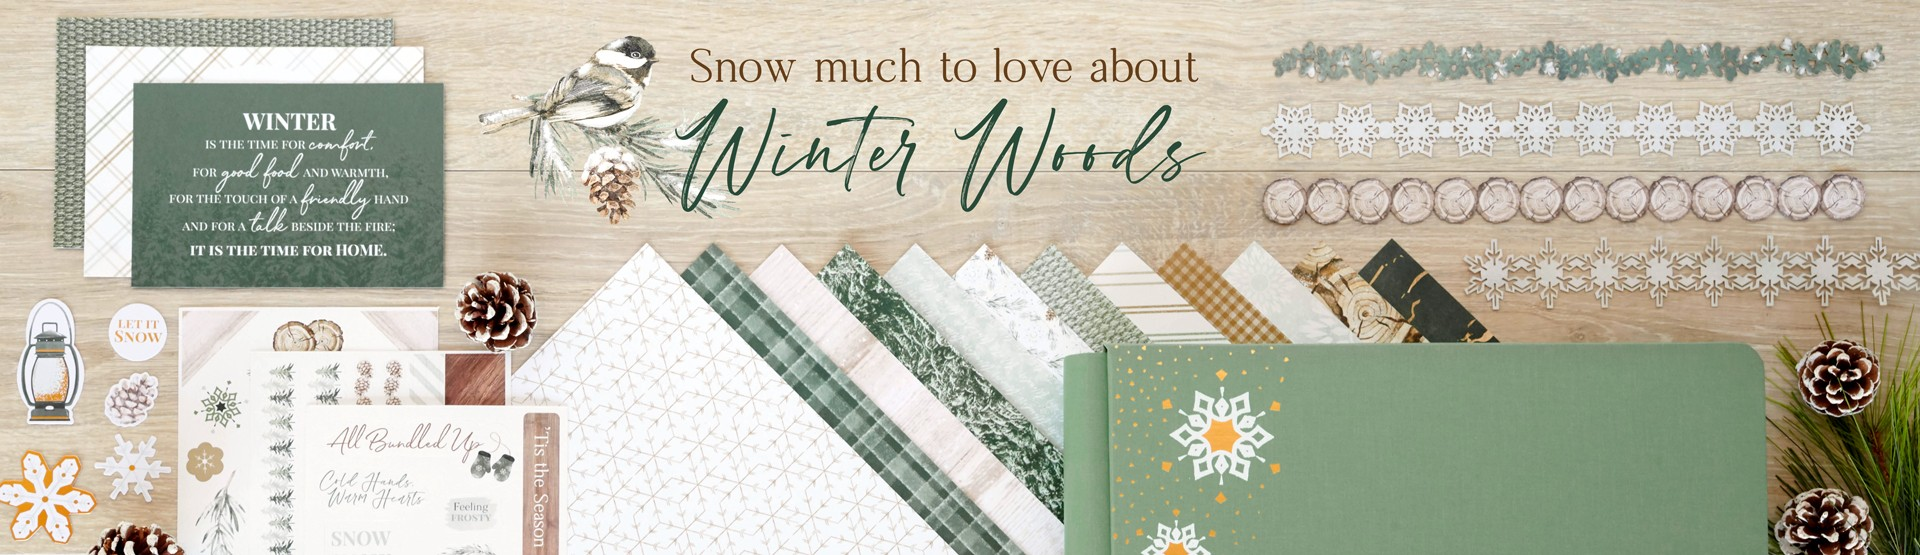 Winter Scrapbooking Supplies: Winter Woods